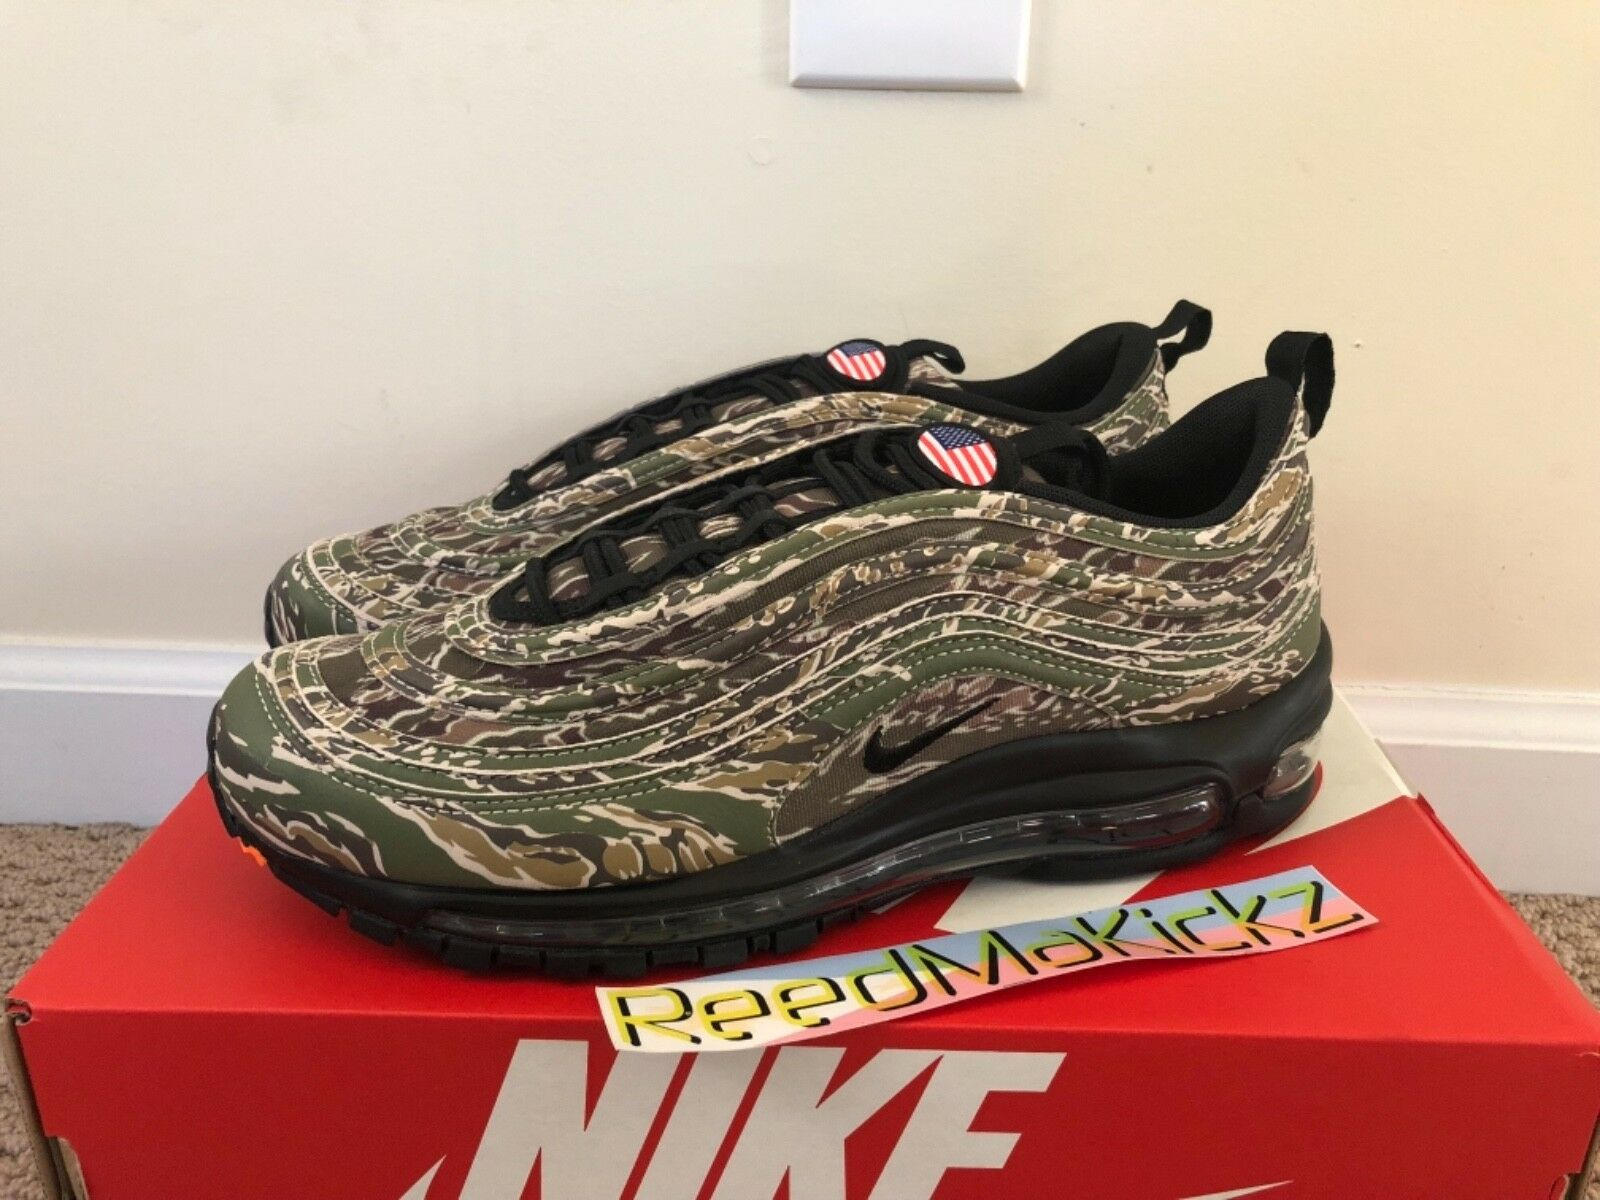 Nike Air Max 97 Premium QS Country Camo 205 USA Mens sizes AJ2614 205 Camo e0cc6f